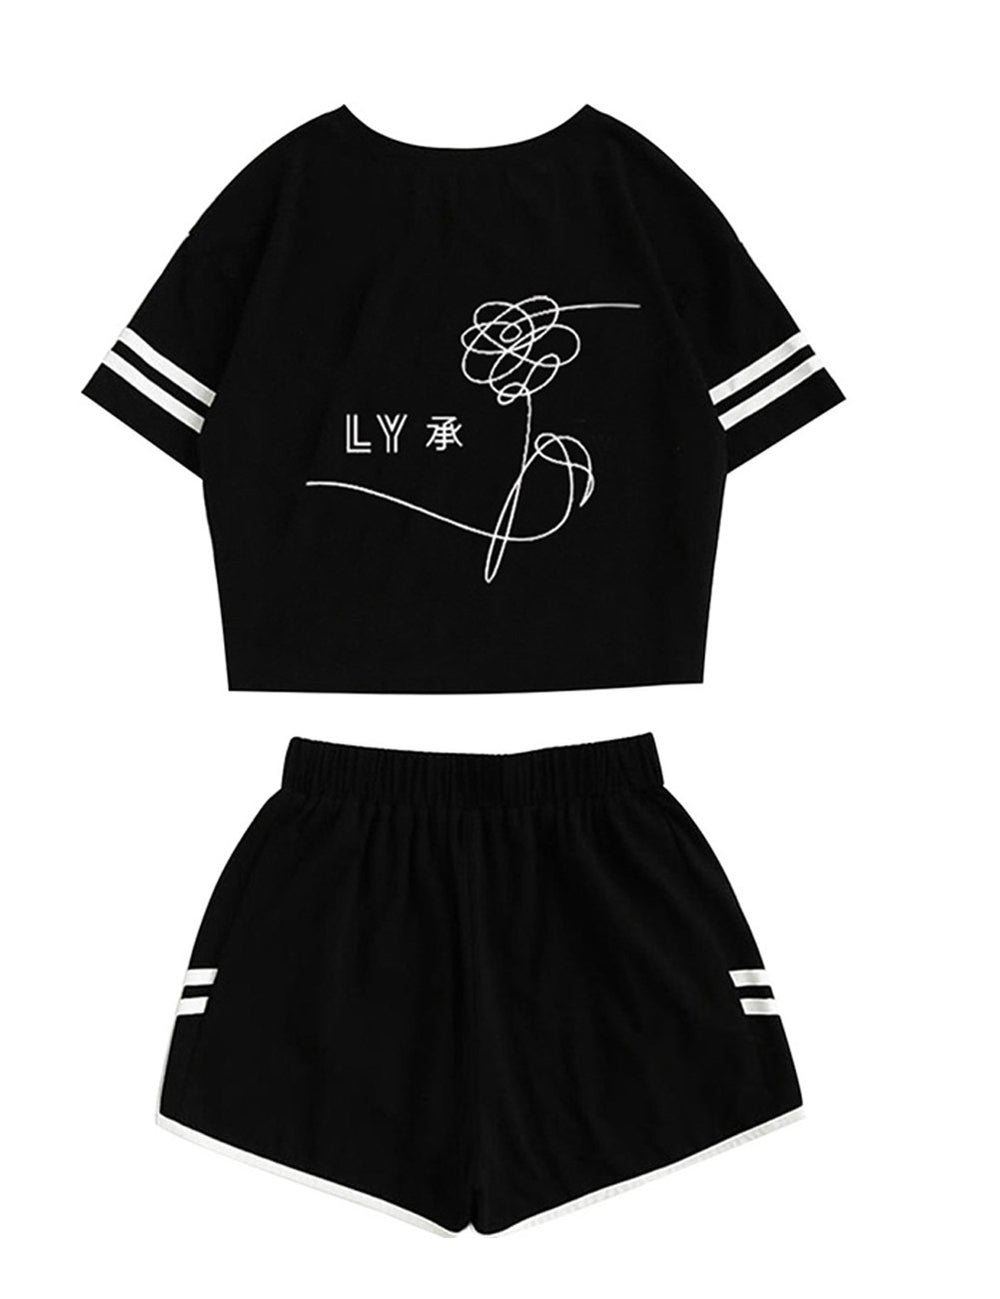 bts love yourself shirt and shorts suit